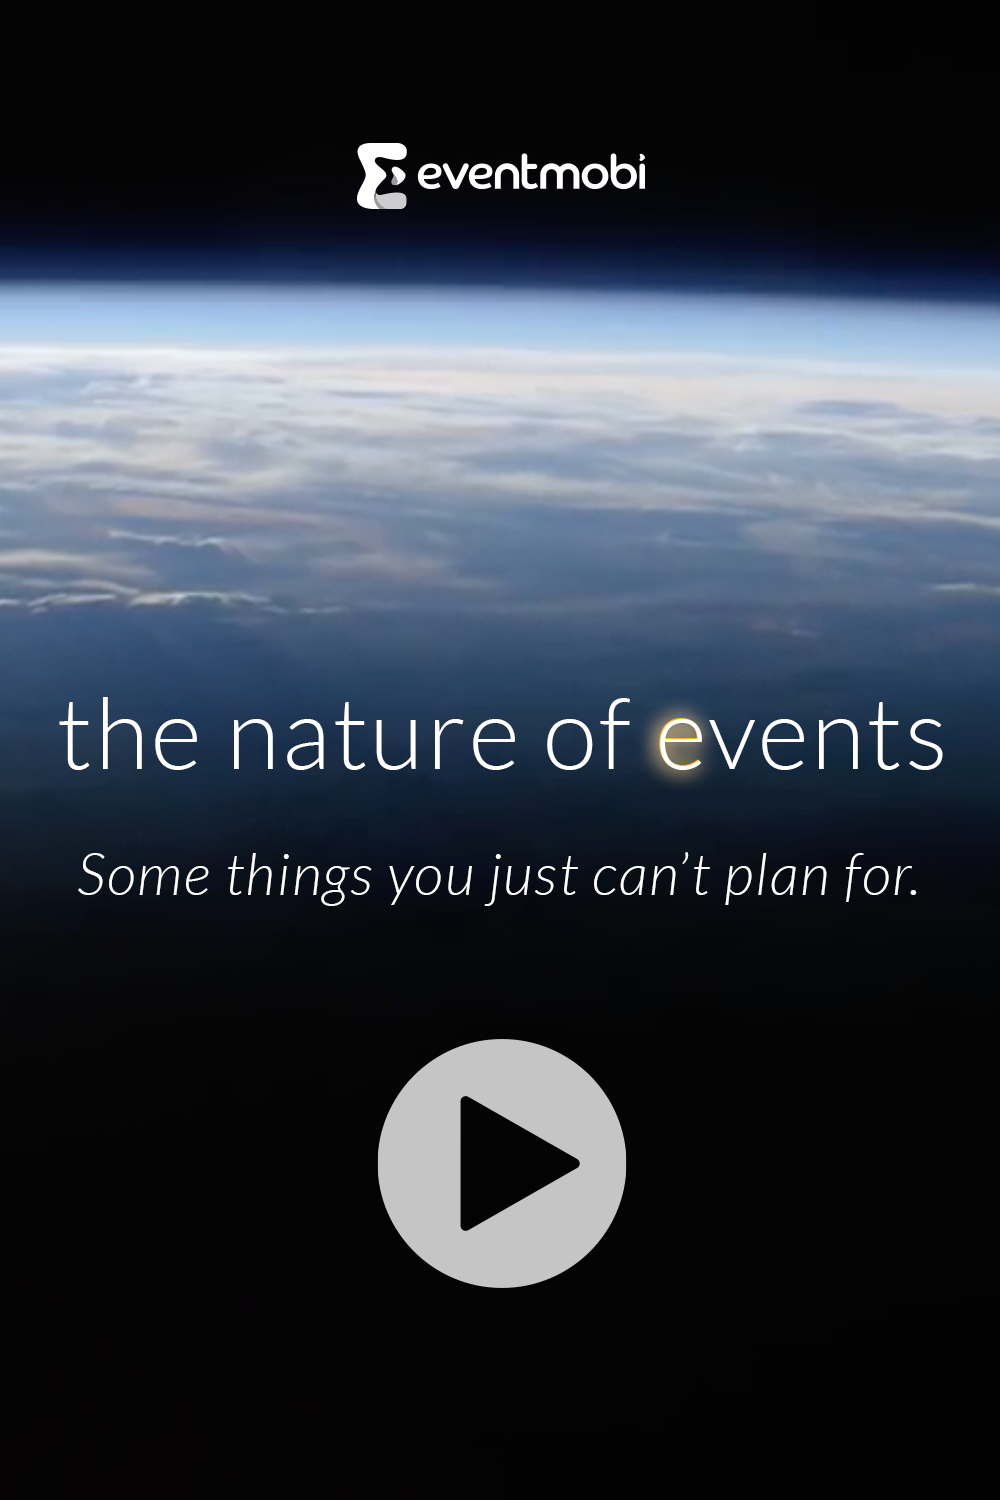 A short film chronicling the migrations of attendees across event habitats, and the journeys of the humble event planners who herd these masses.